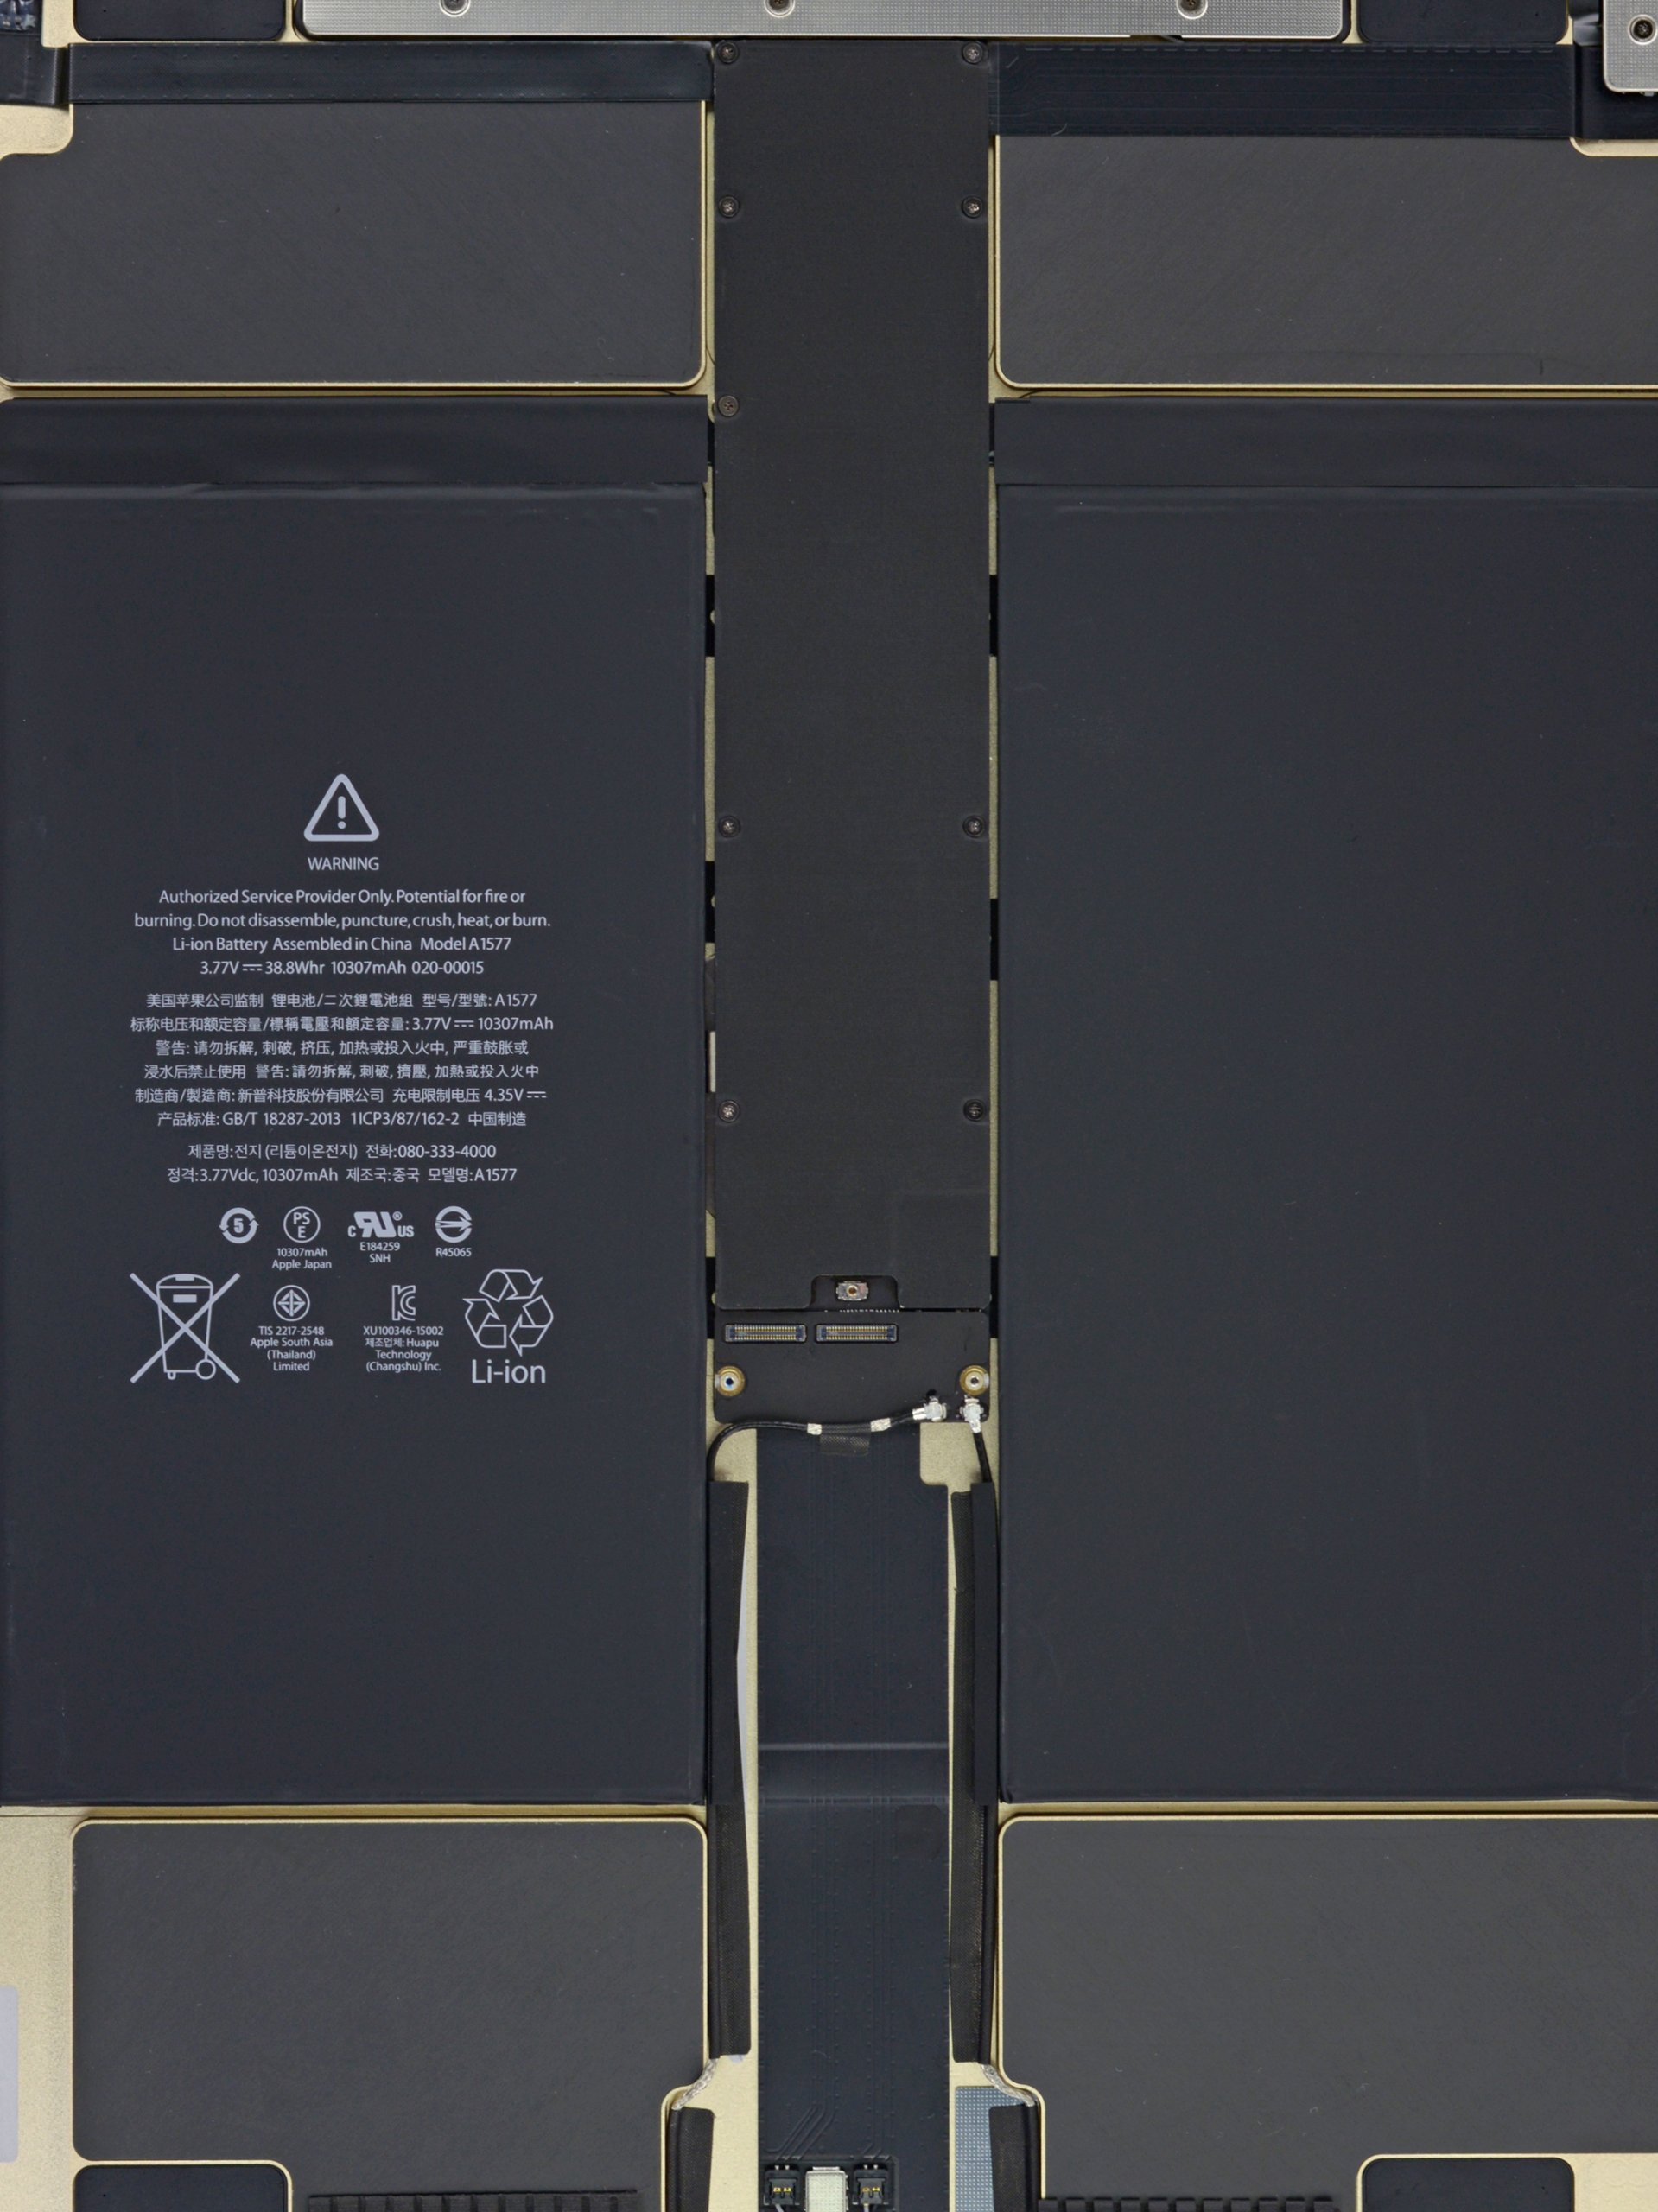 Ipad Pro Teardown Wallpapers Are Here Ifixit